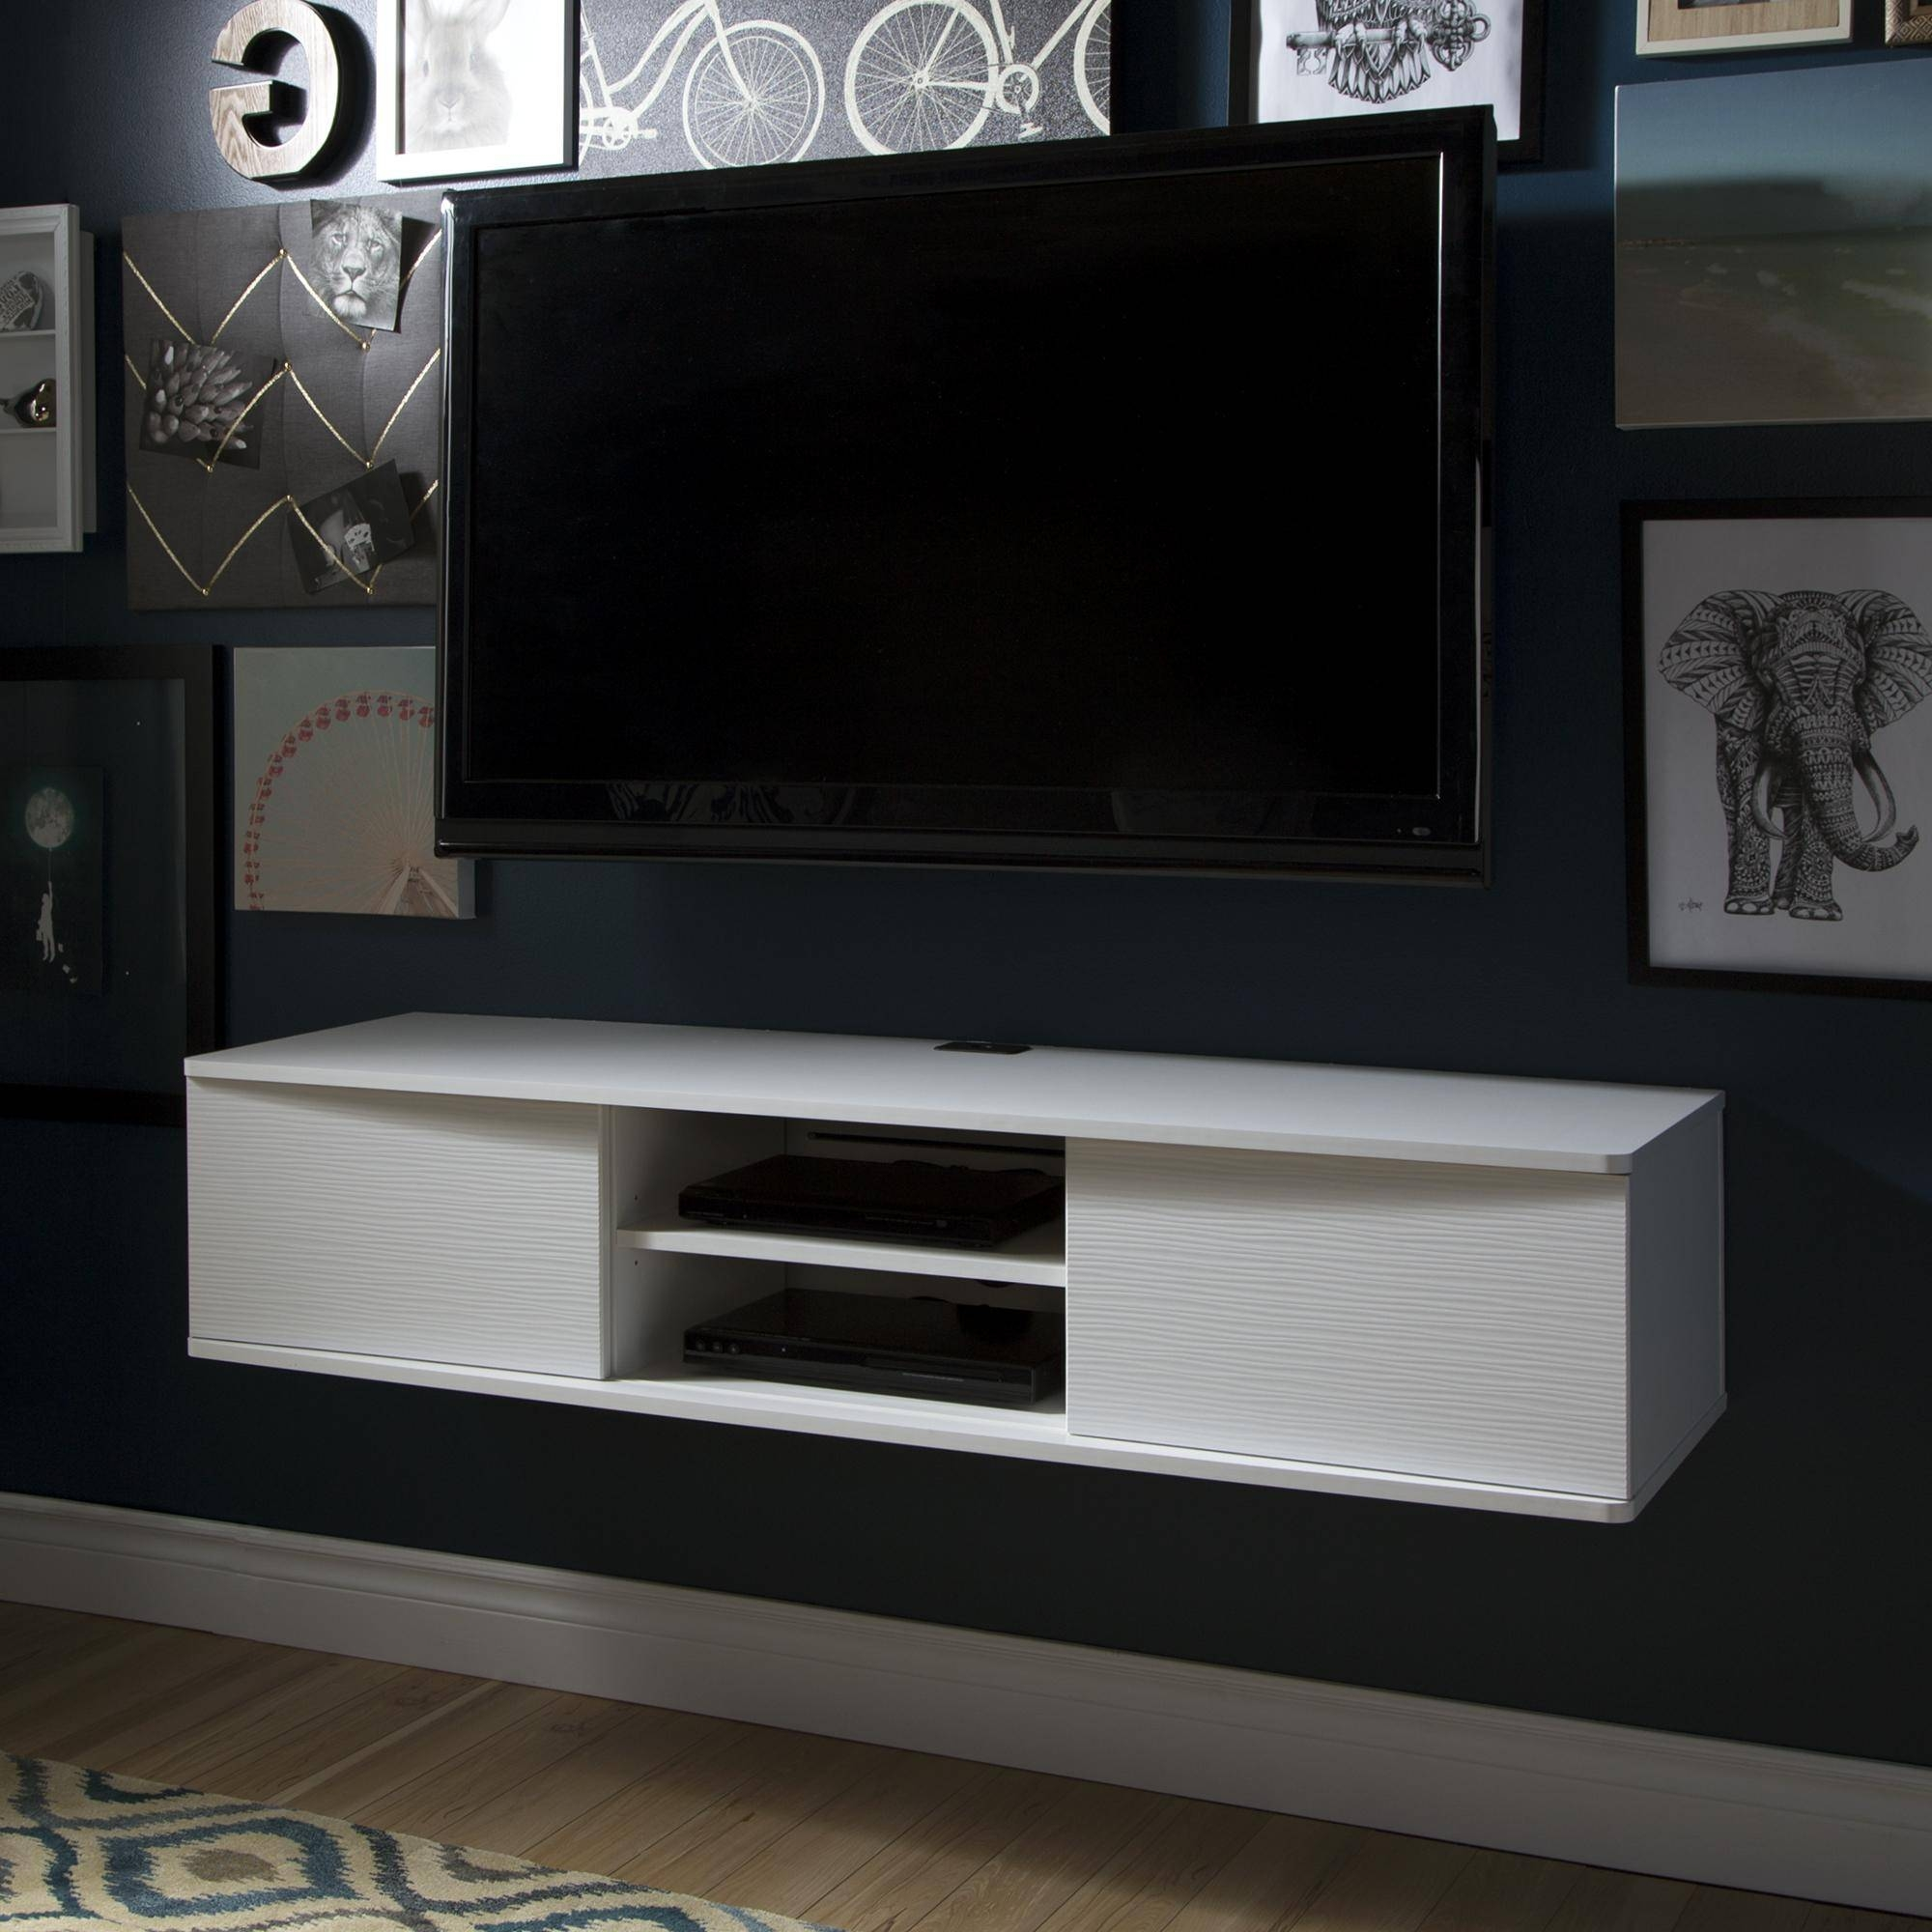 Floating Tv Unit Wall Mounted 15 Best White Wall Mounted Tv Stands